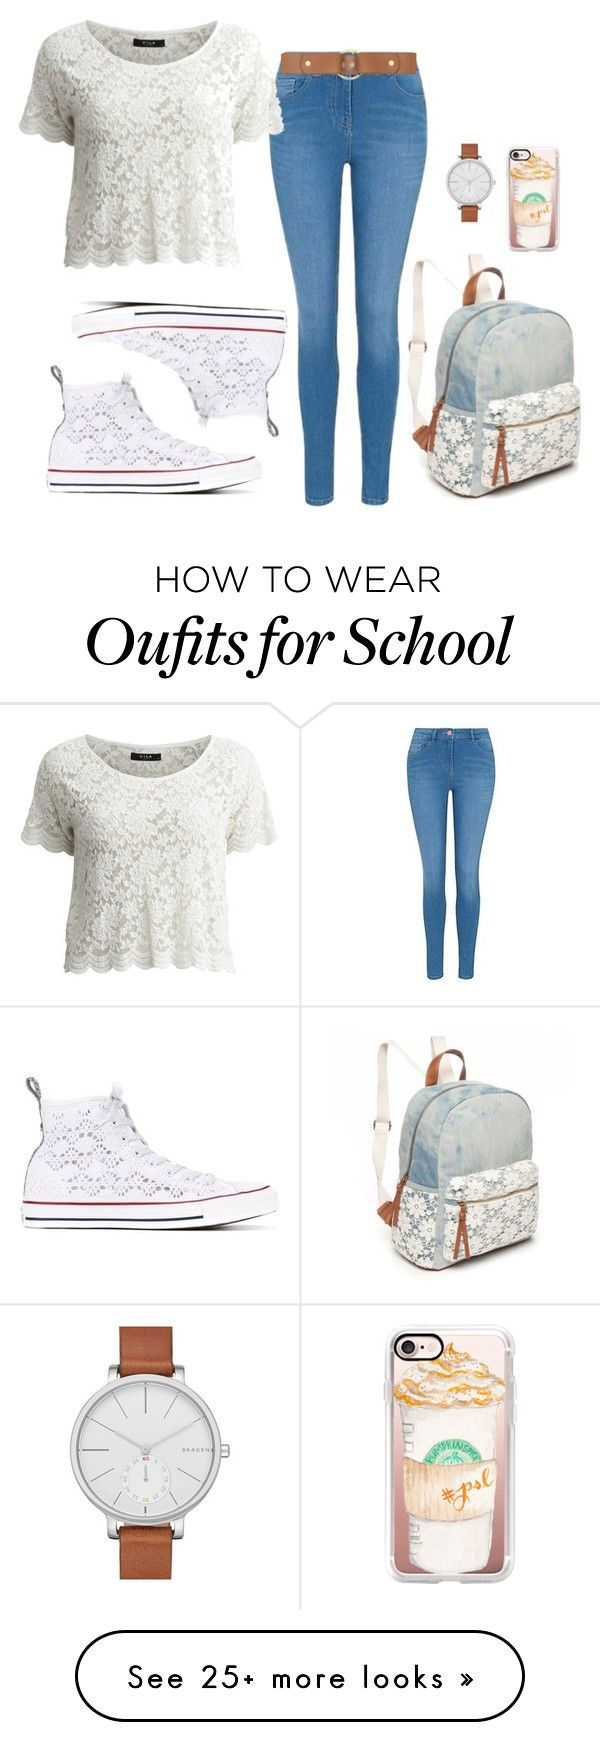 """""""Converse Chuck Taylor All Star - 17 #School"""" by inlovewithtay on Polyvore featuring Red Camel, Converse, George, VILA, Skagen, Casetify, Marni, converse and allstar"""